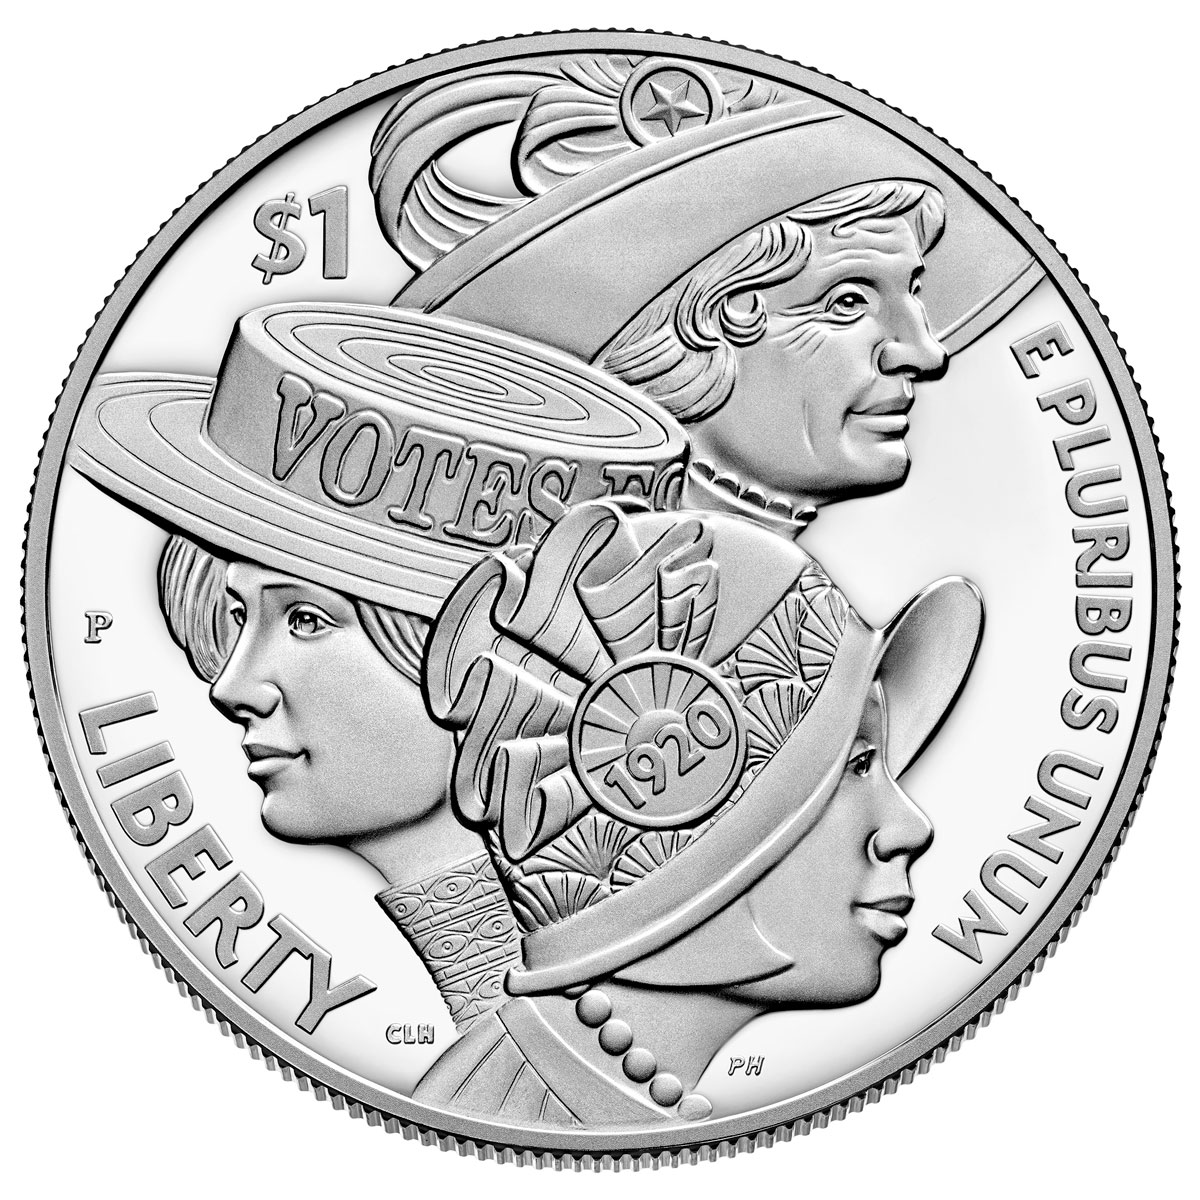 2020-P Women's Suffrage 100th Anniversary Commemorative Silver Dollar Proof Coin GEM Proof